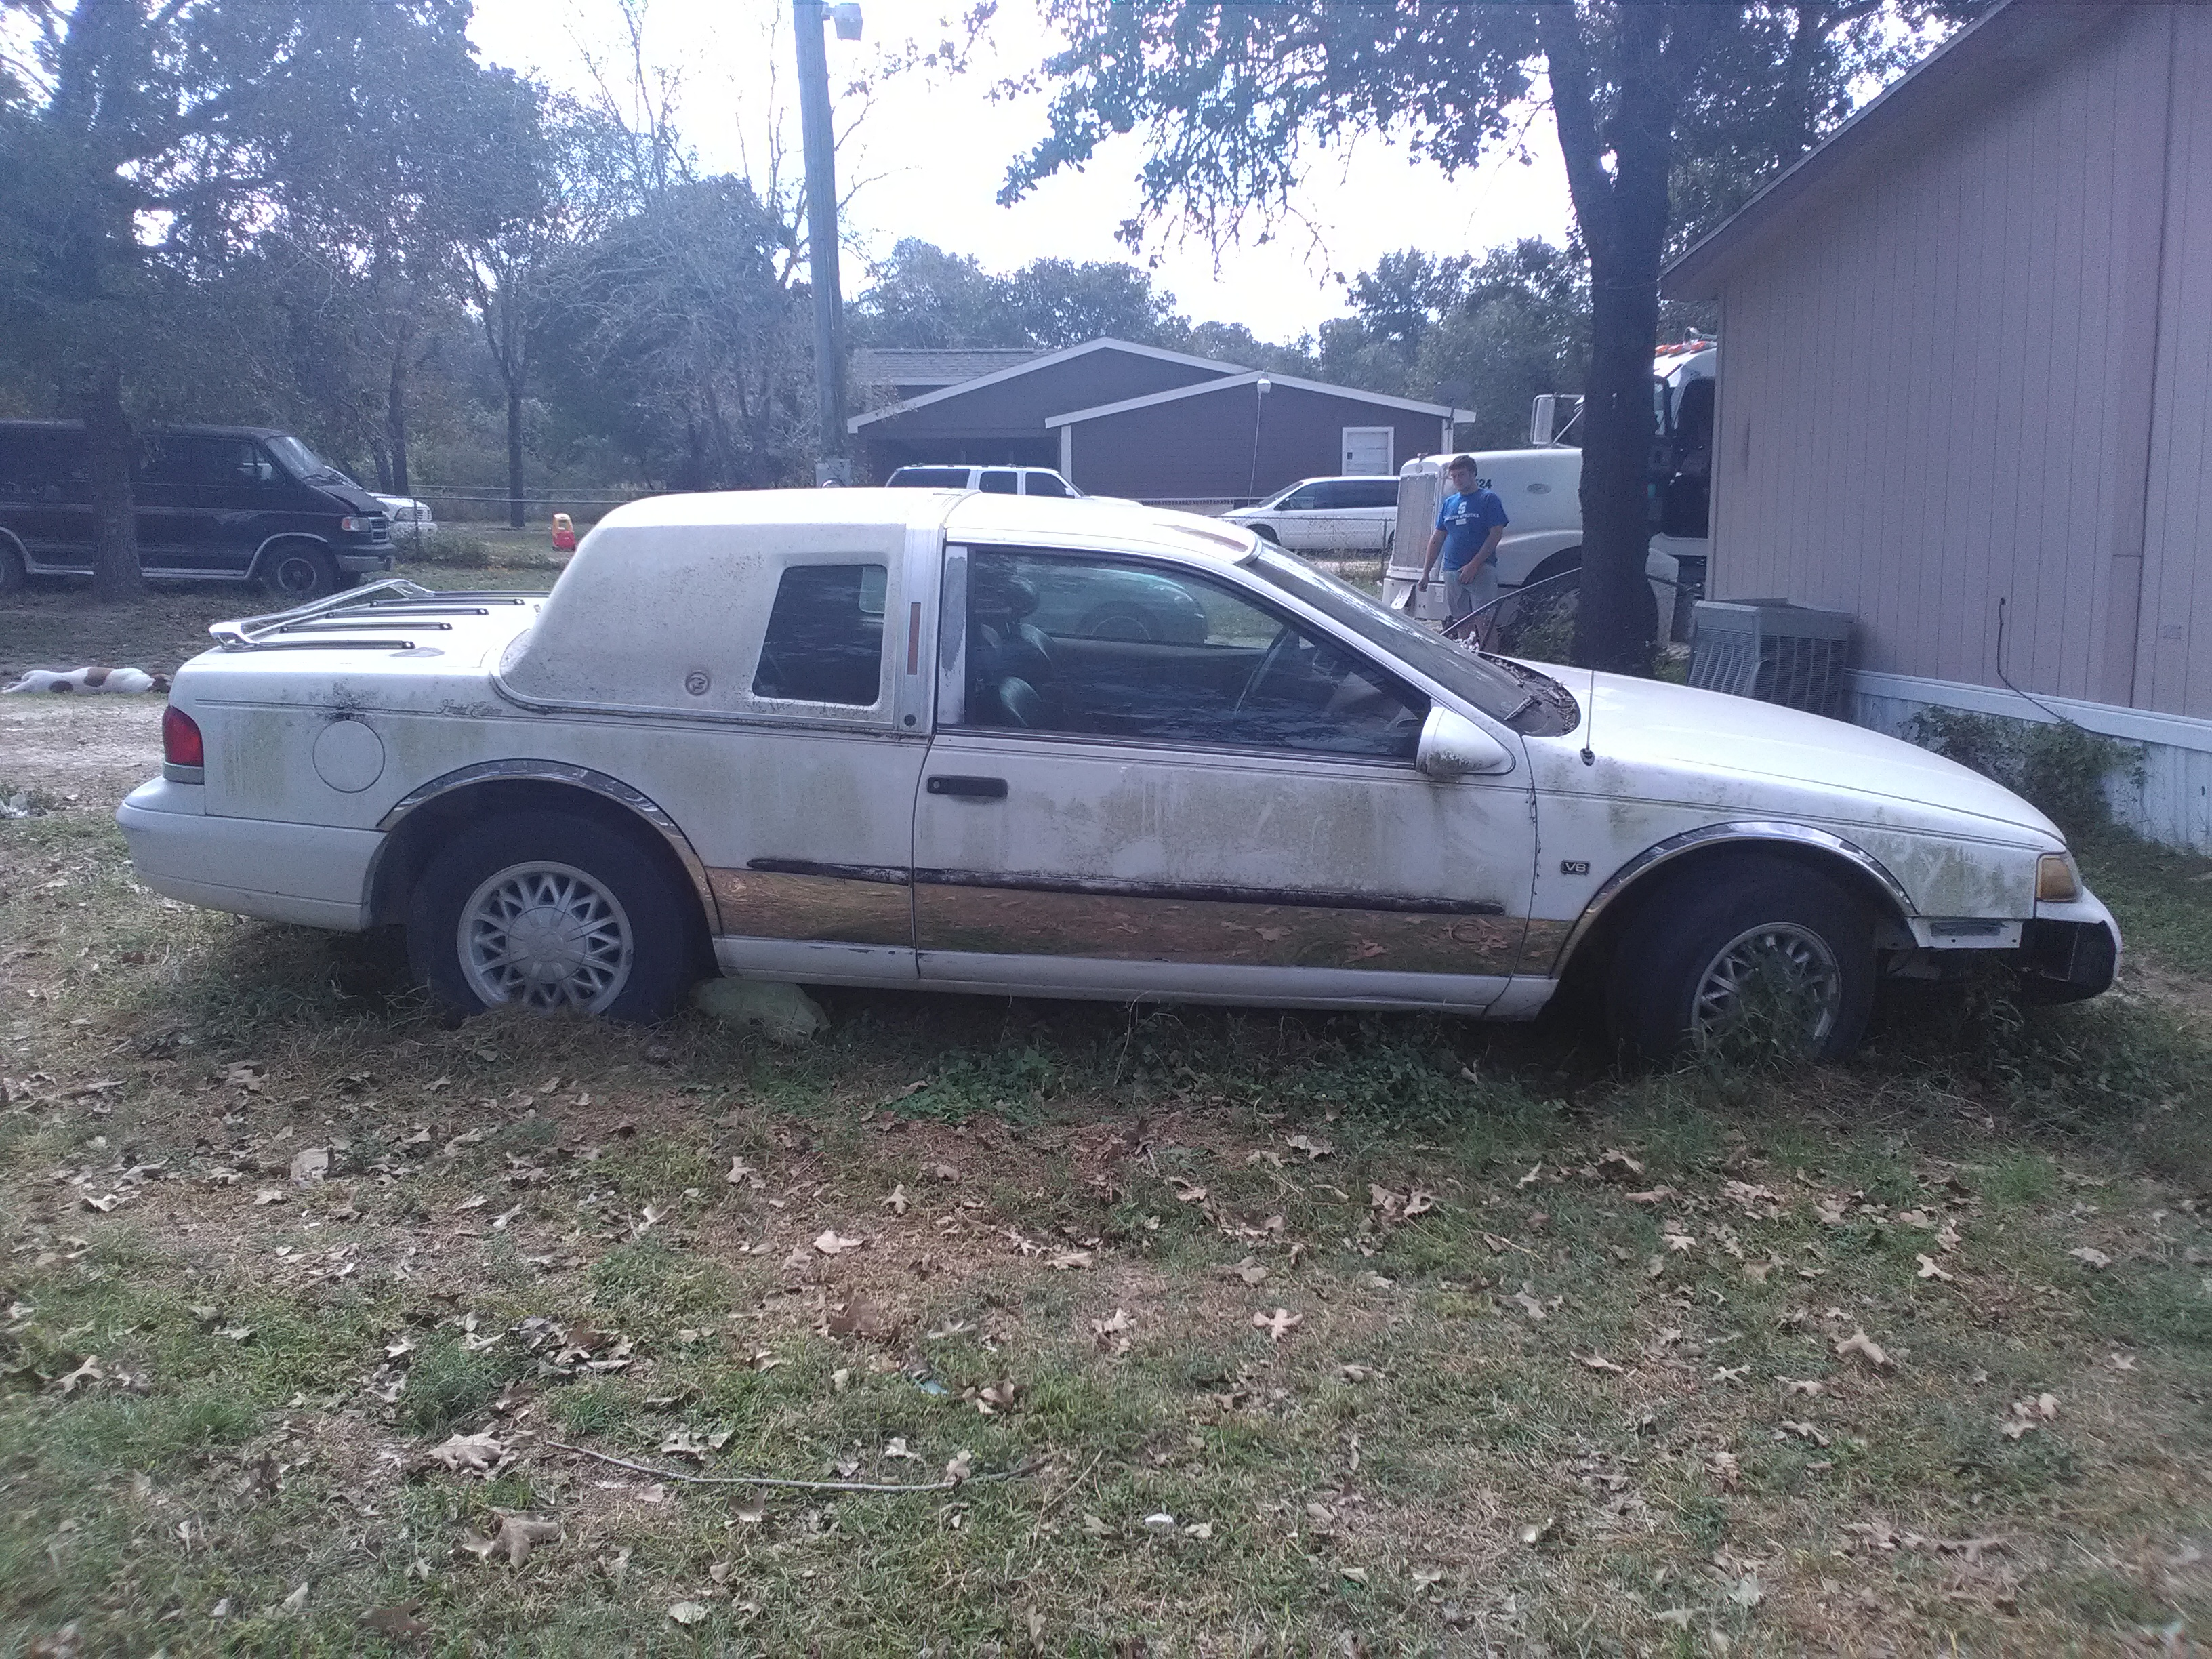 Cash for Cars Irving, TX | Sell Your Junk Car | The Clunker Junker